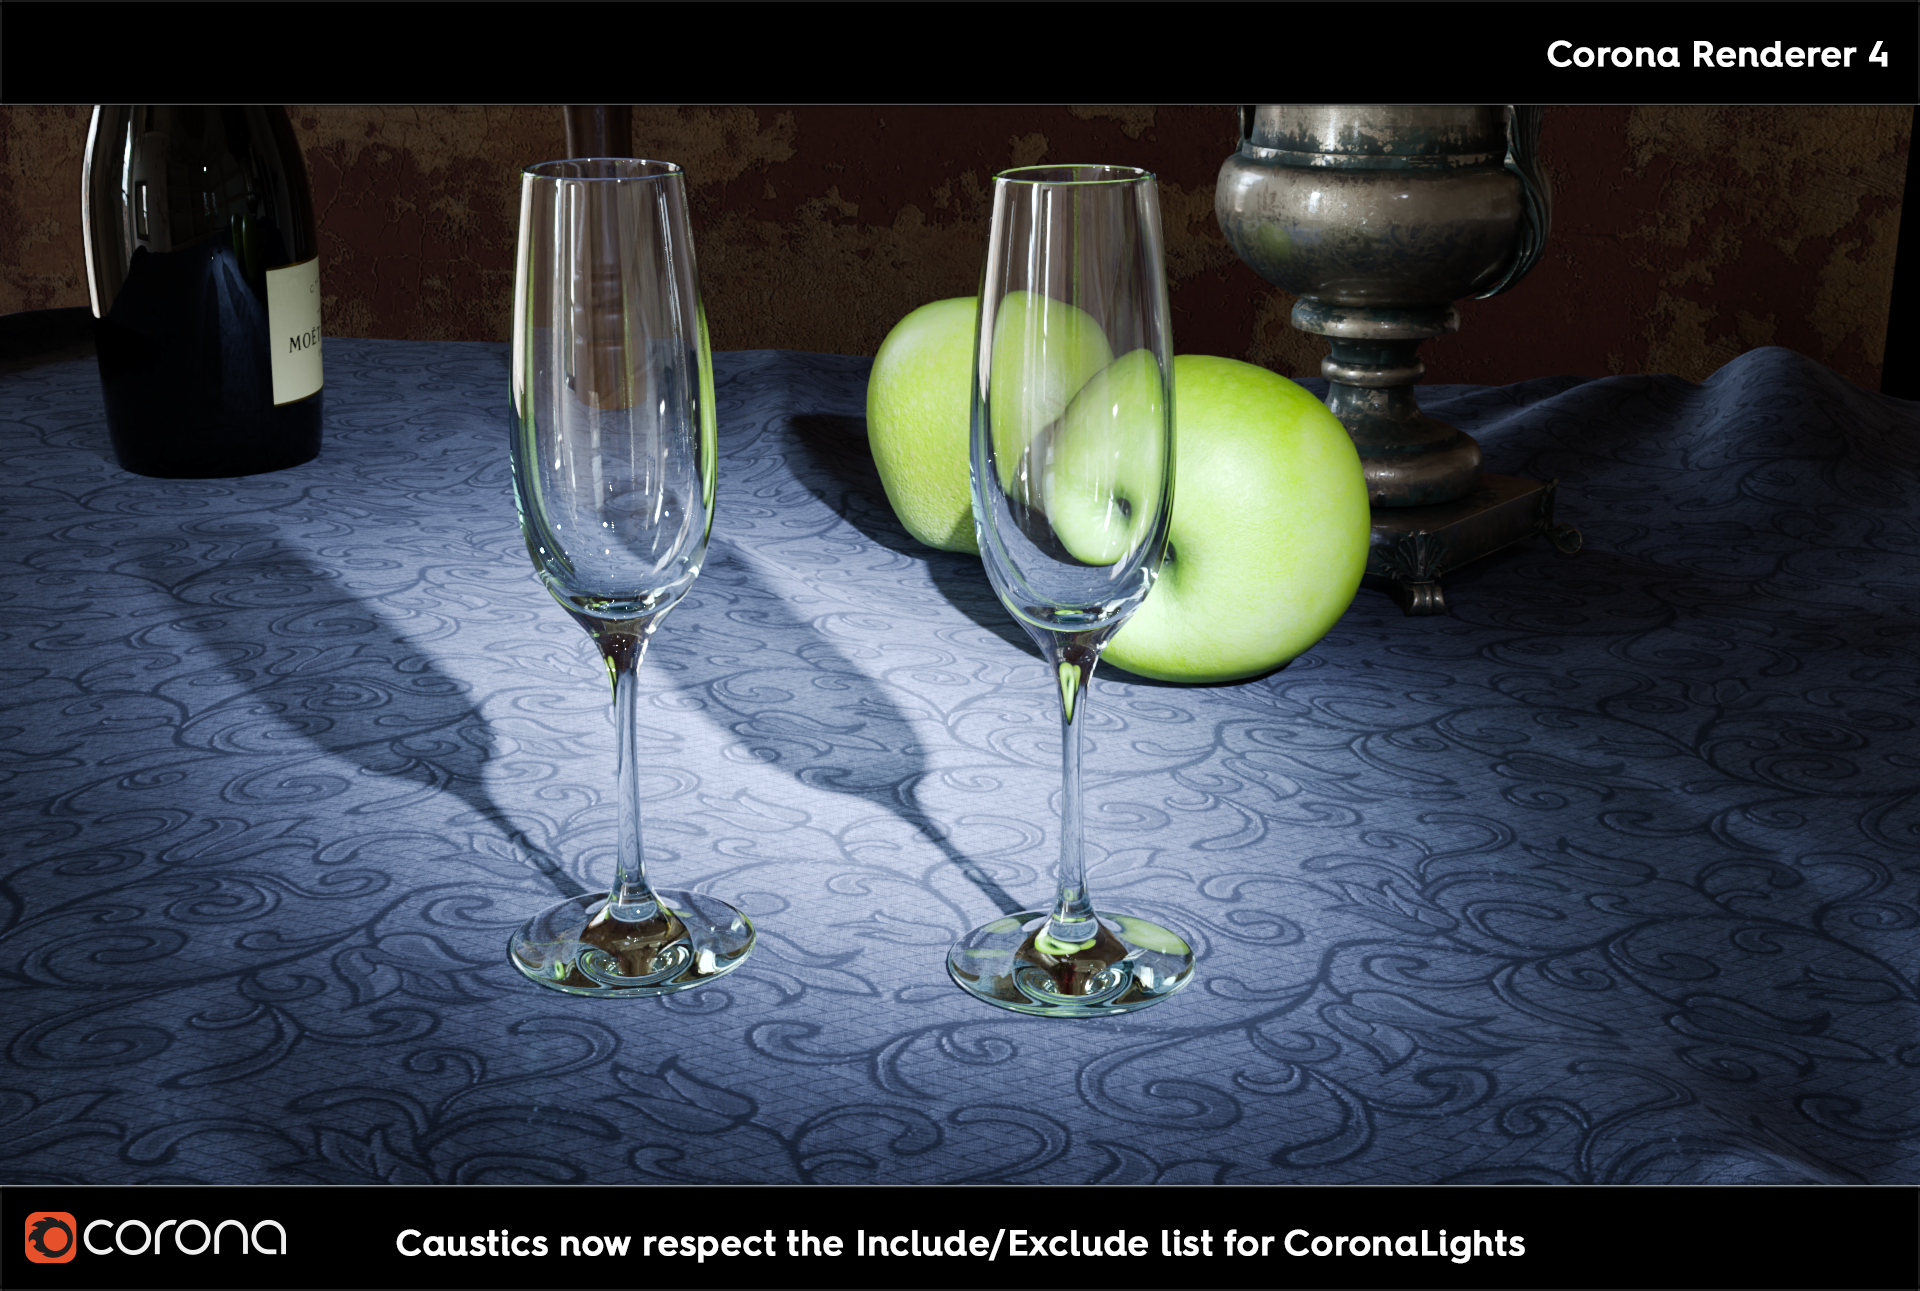 Corona Renderer 5, Caustics now respect Include/Exclude lists for CoronaLights